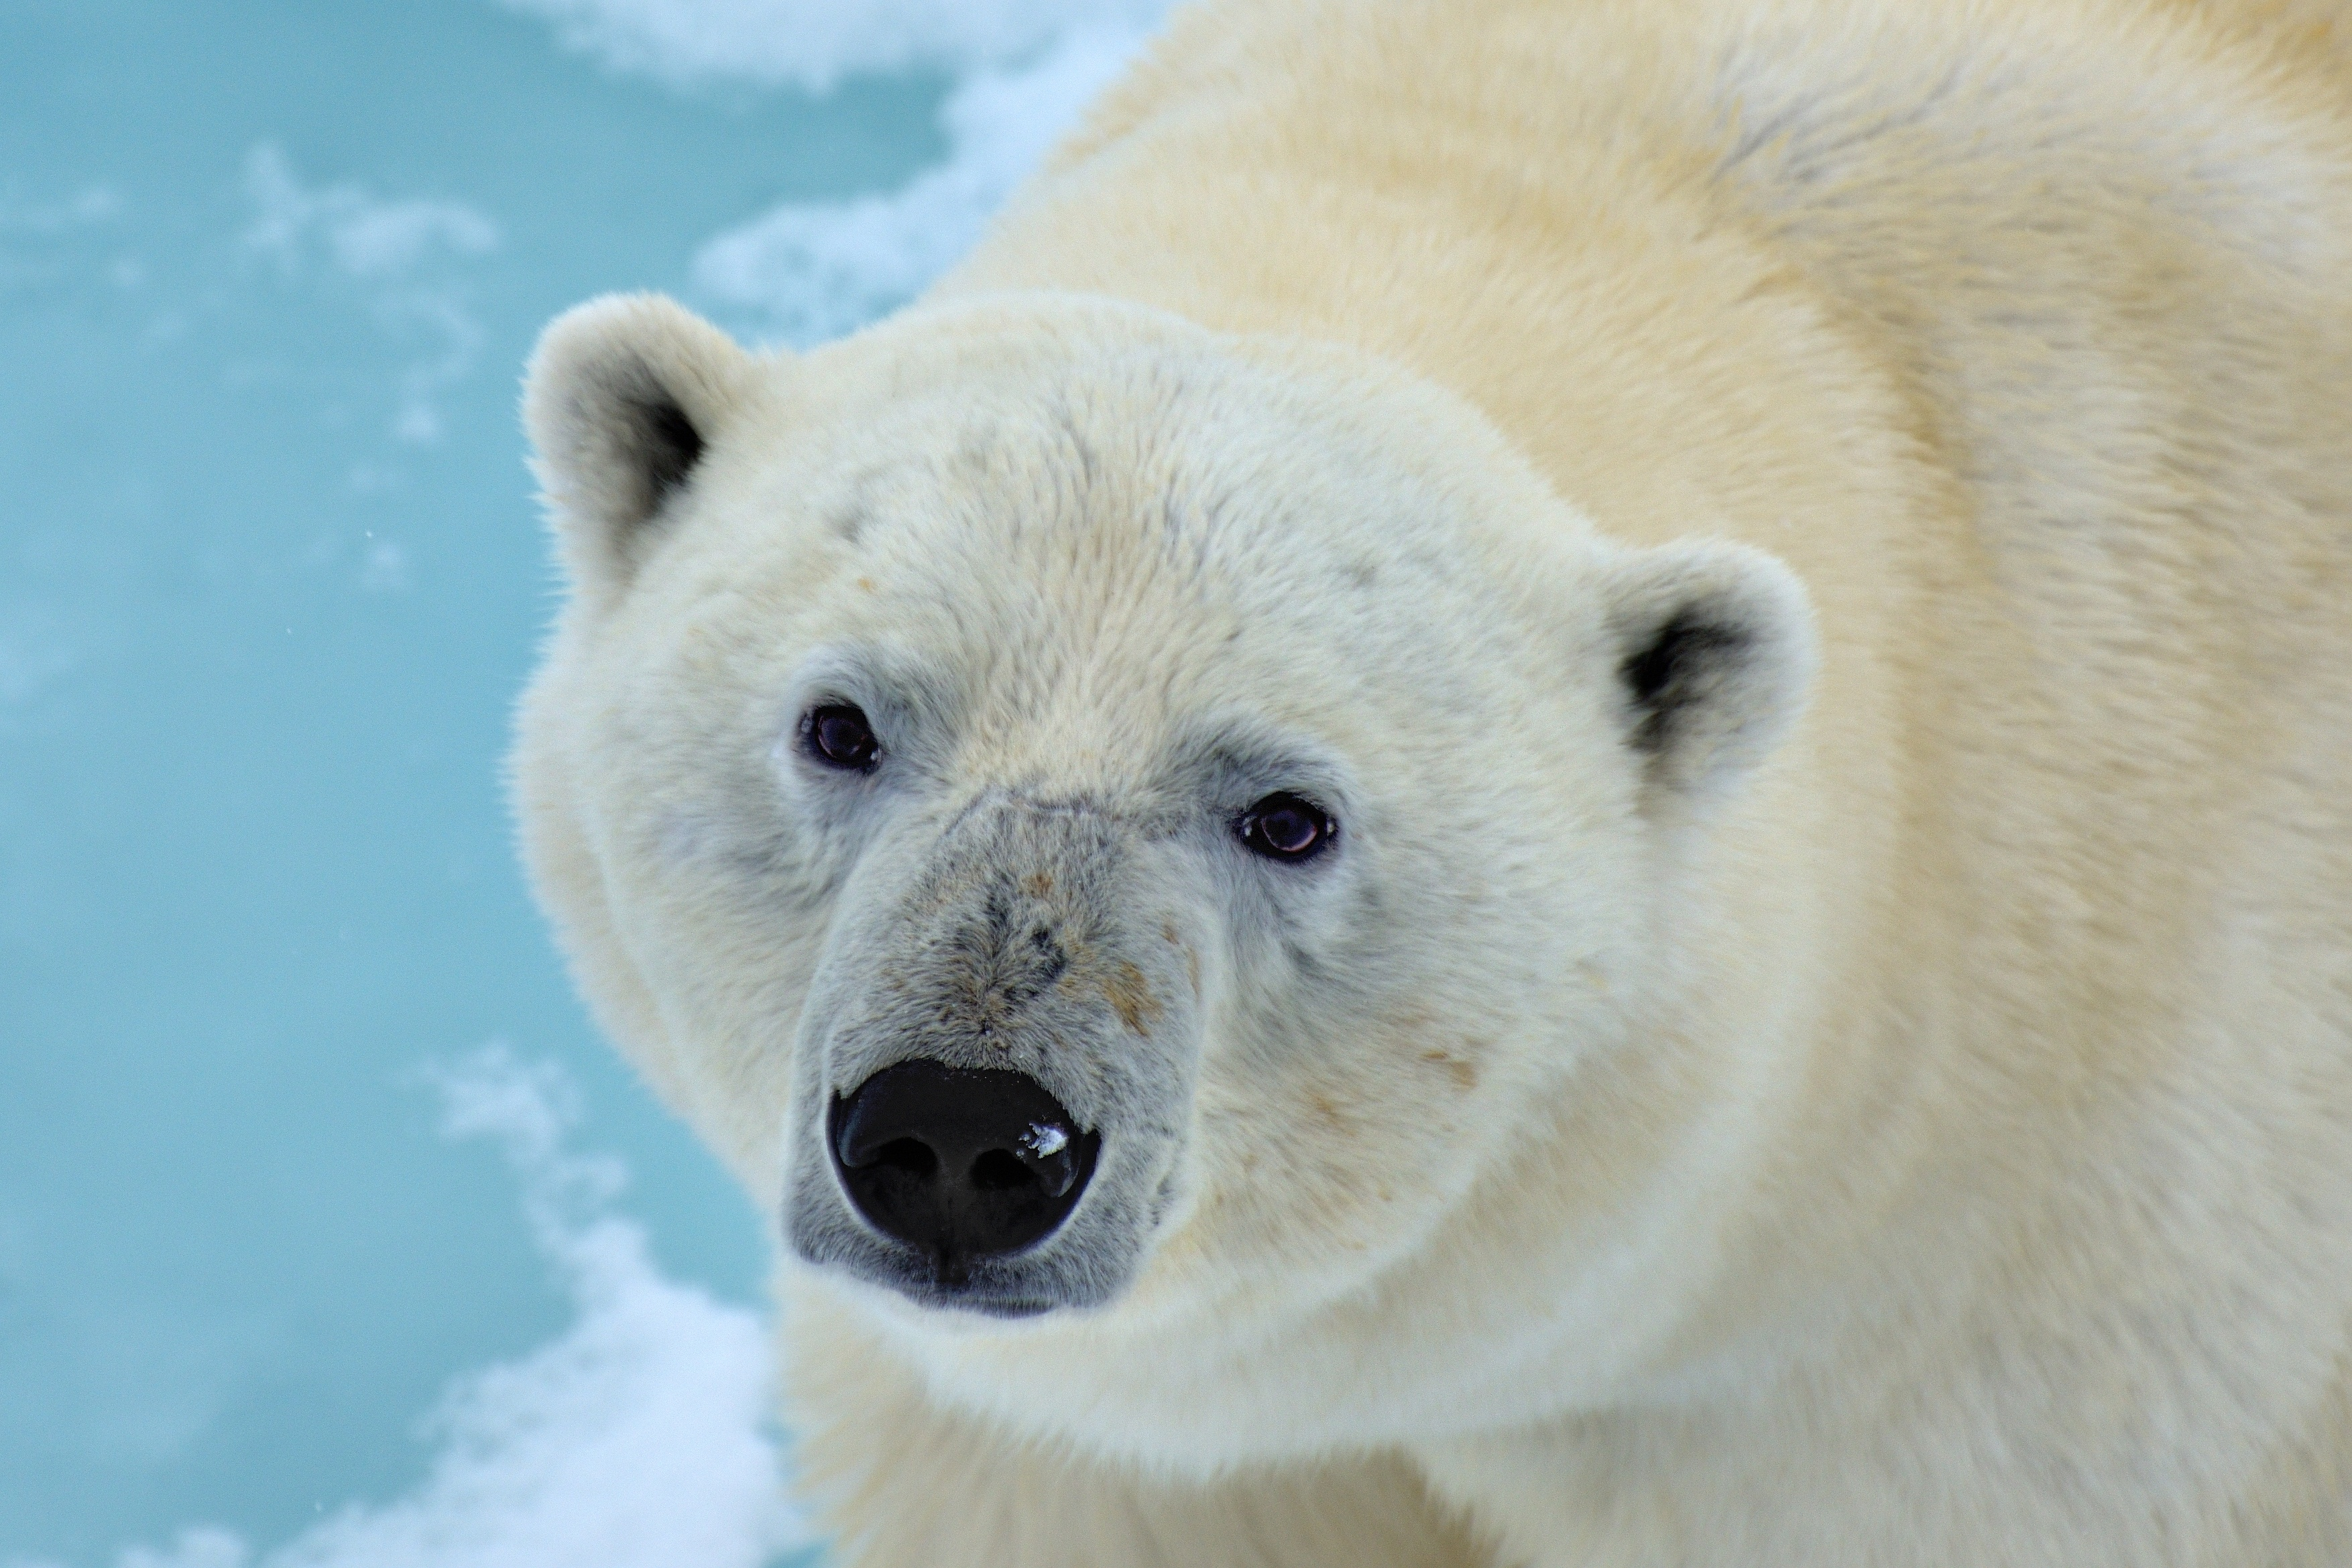 wallpaper of polar bear, stare, wildlife, predator, animal desktop